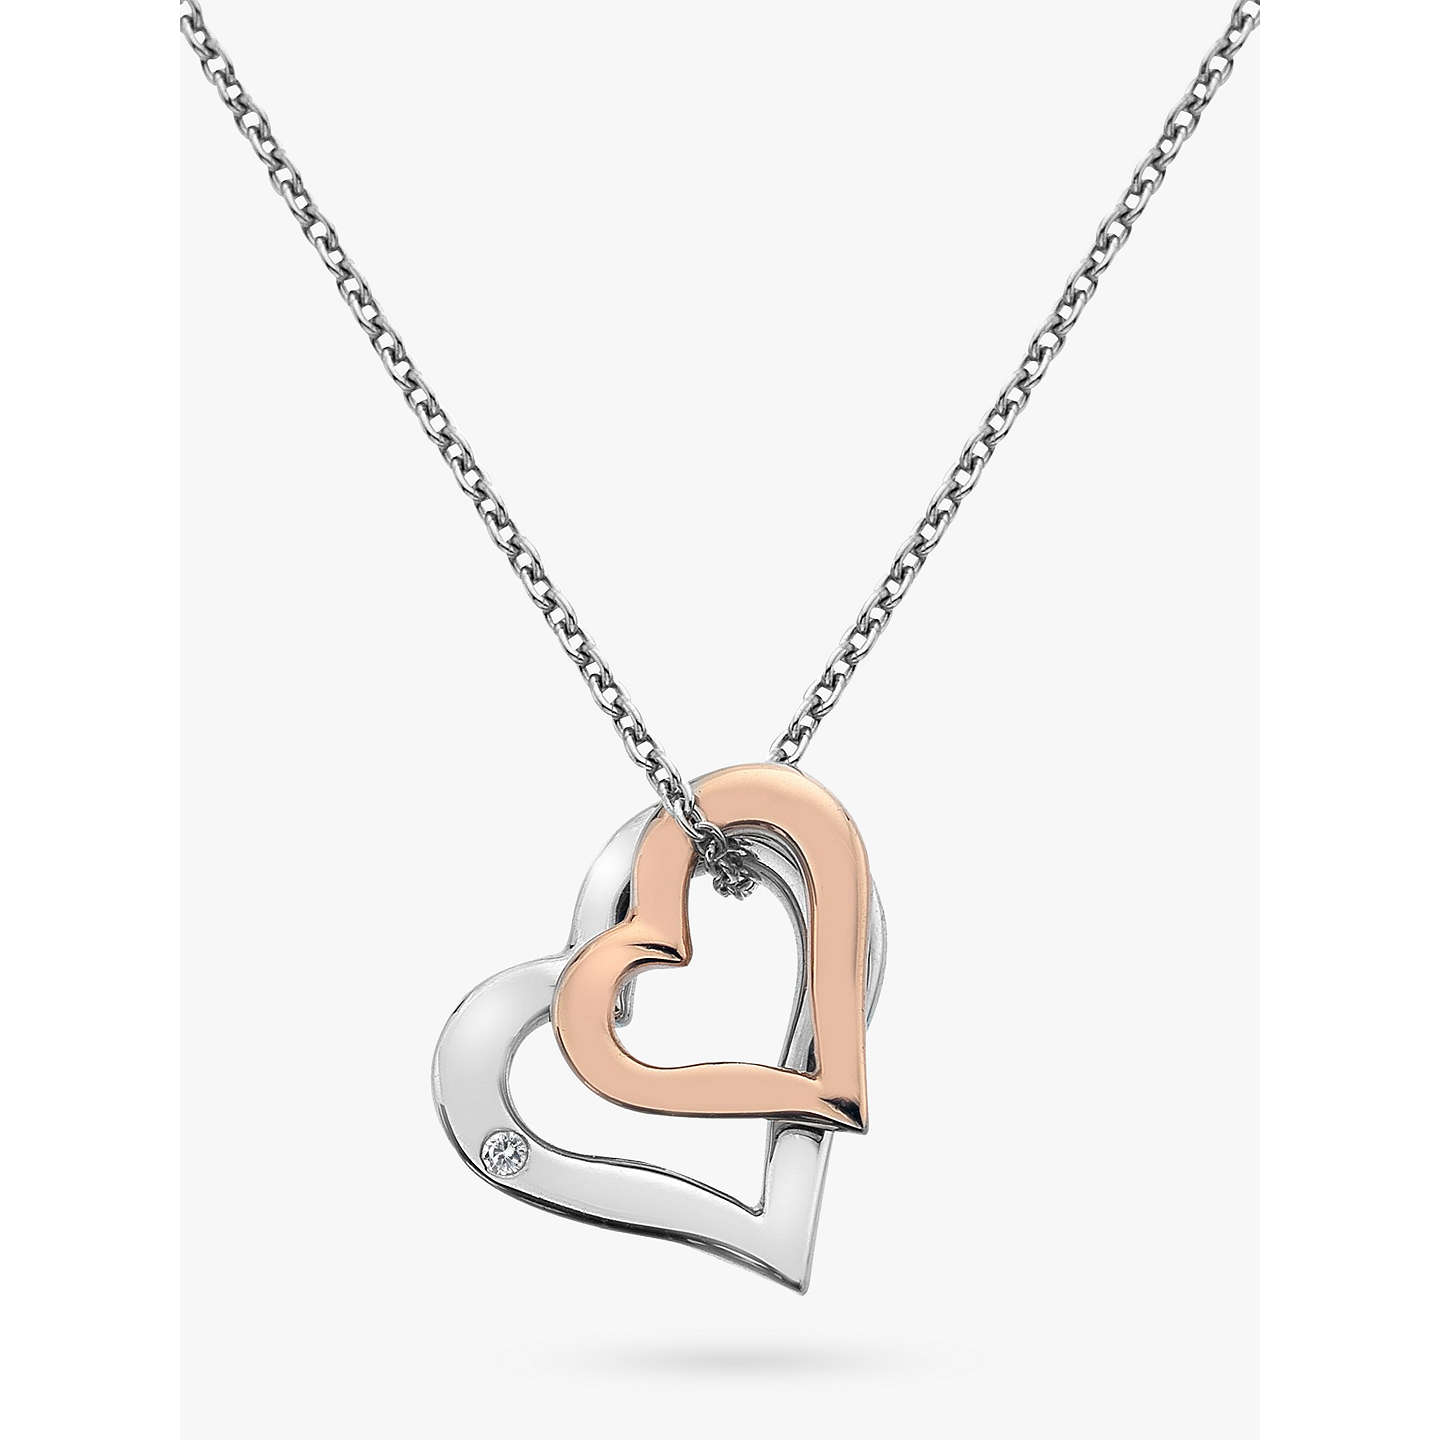 tiffany pendant heart pendants fmt mini silver with to double ed hei in return constrain pink wid id br tag fit necklaces jewelry